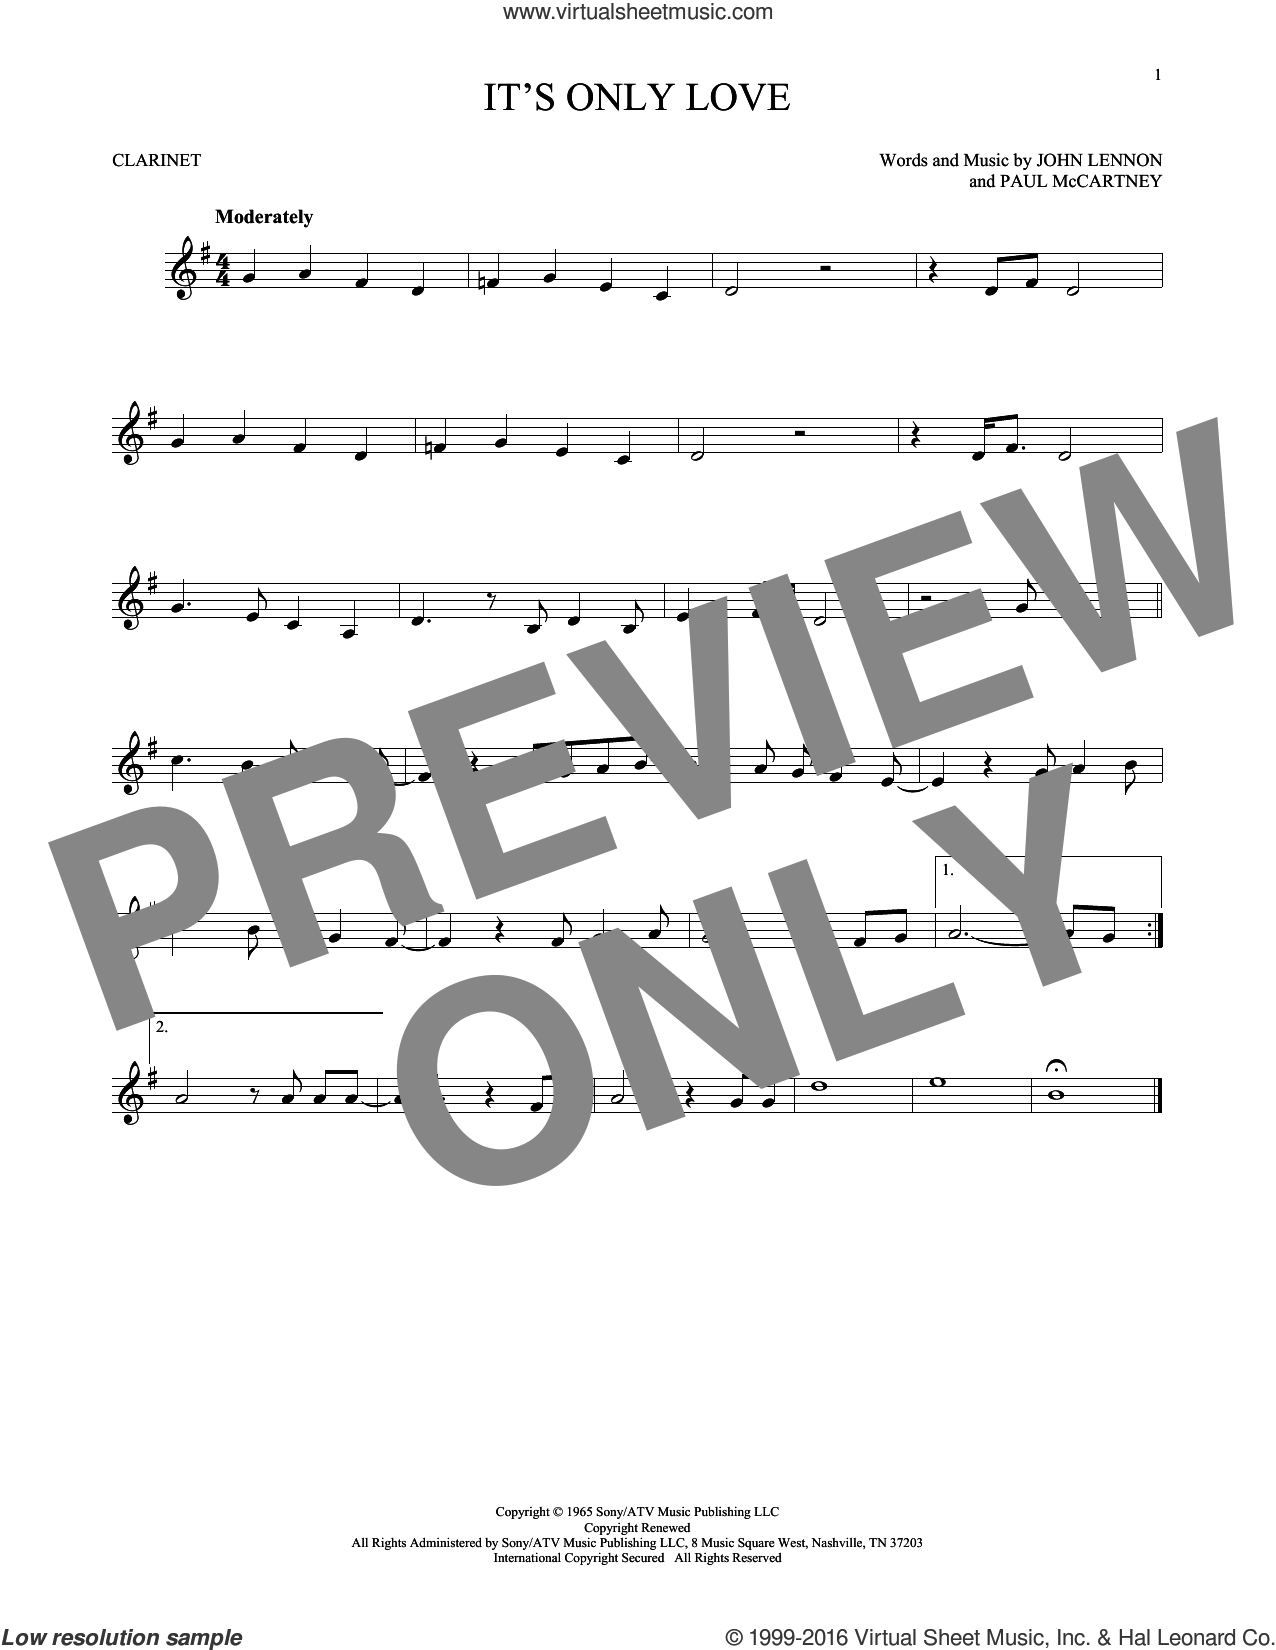 It's Only Love sheet music for clarinet solo by The Beatles, John Lennon and Paul McCartney, intermediate skill level